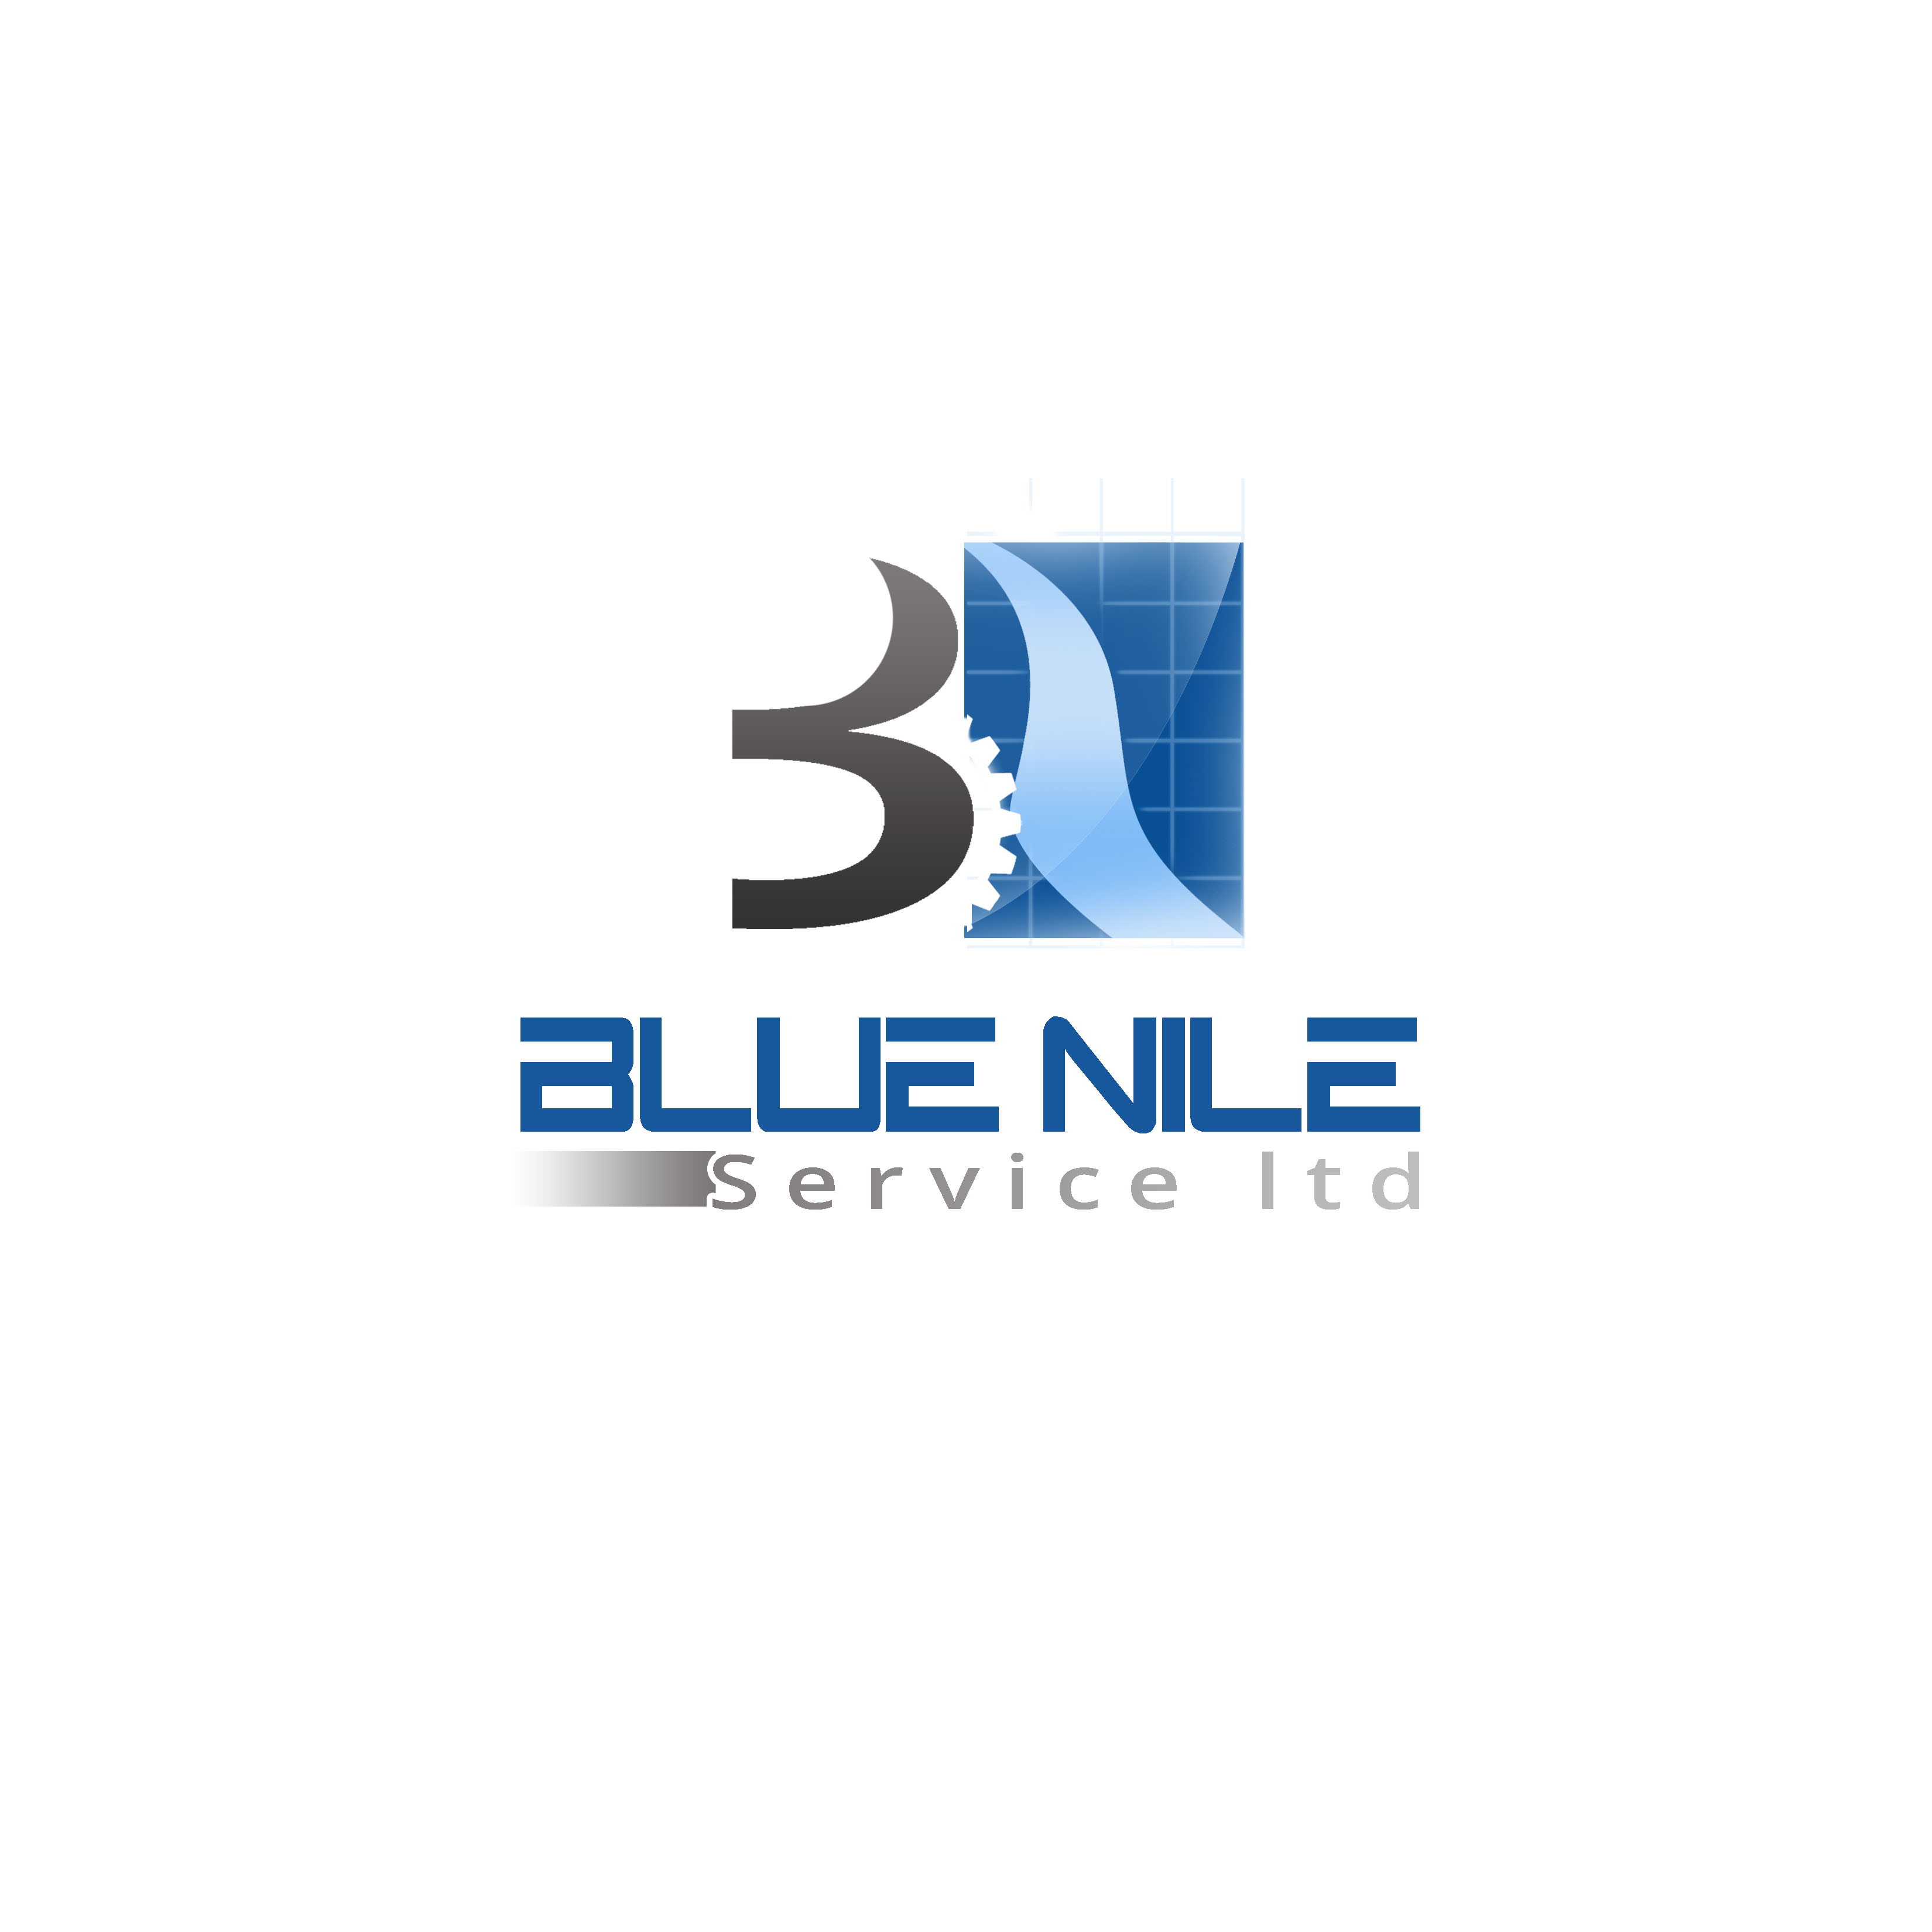 Logo Design by Allan Esclamado - Entry No. 9 in the Logo Design Contest Imaginative Logo Design for Blue Nile Service Ltd.